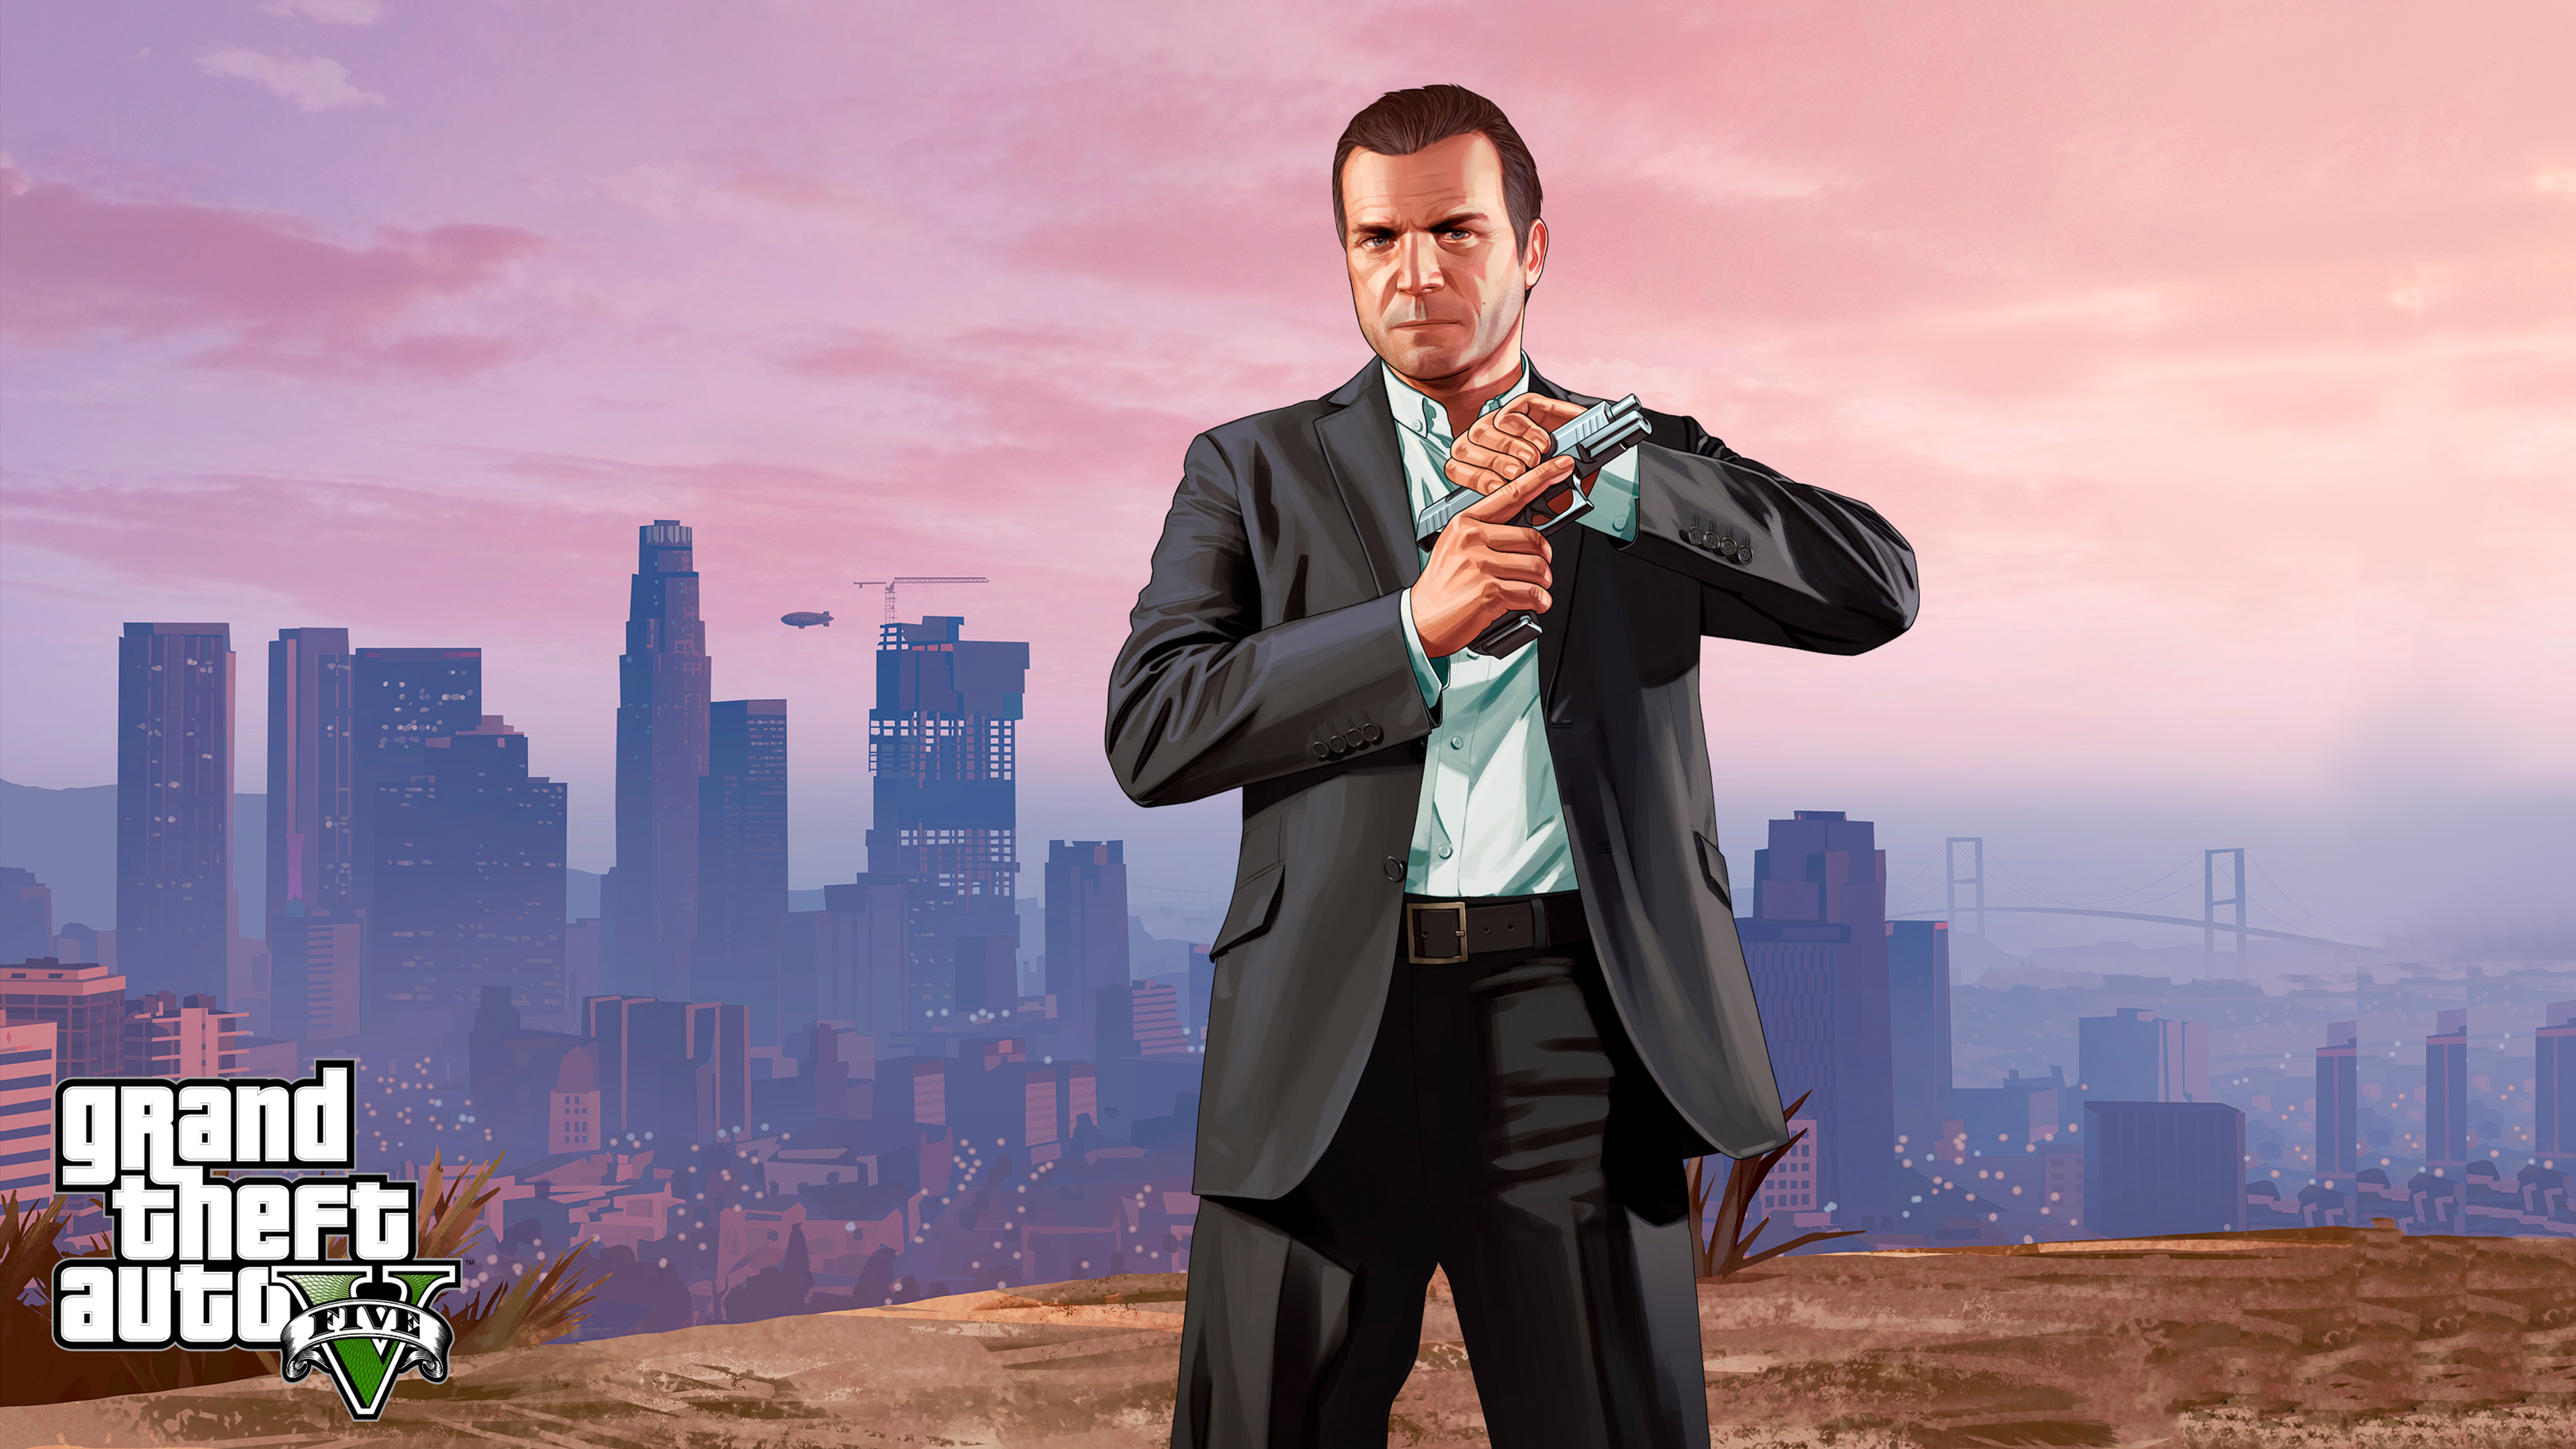 download this free gta 5 michael tablet wallpaper in hd or 4k 0235